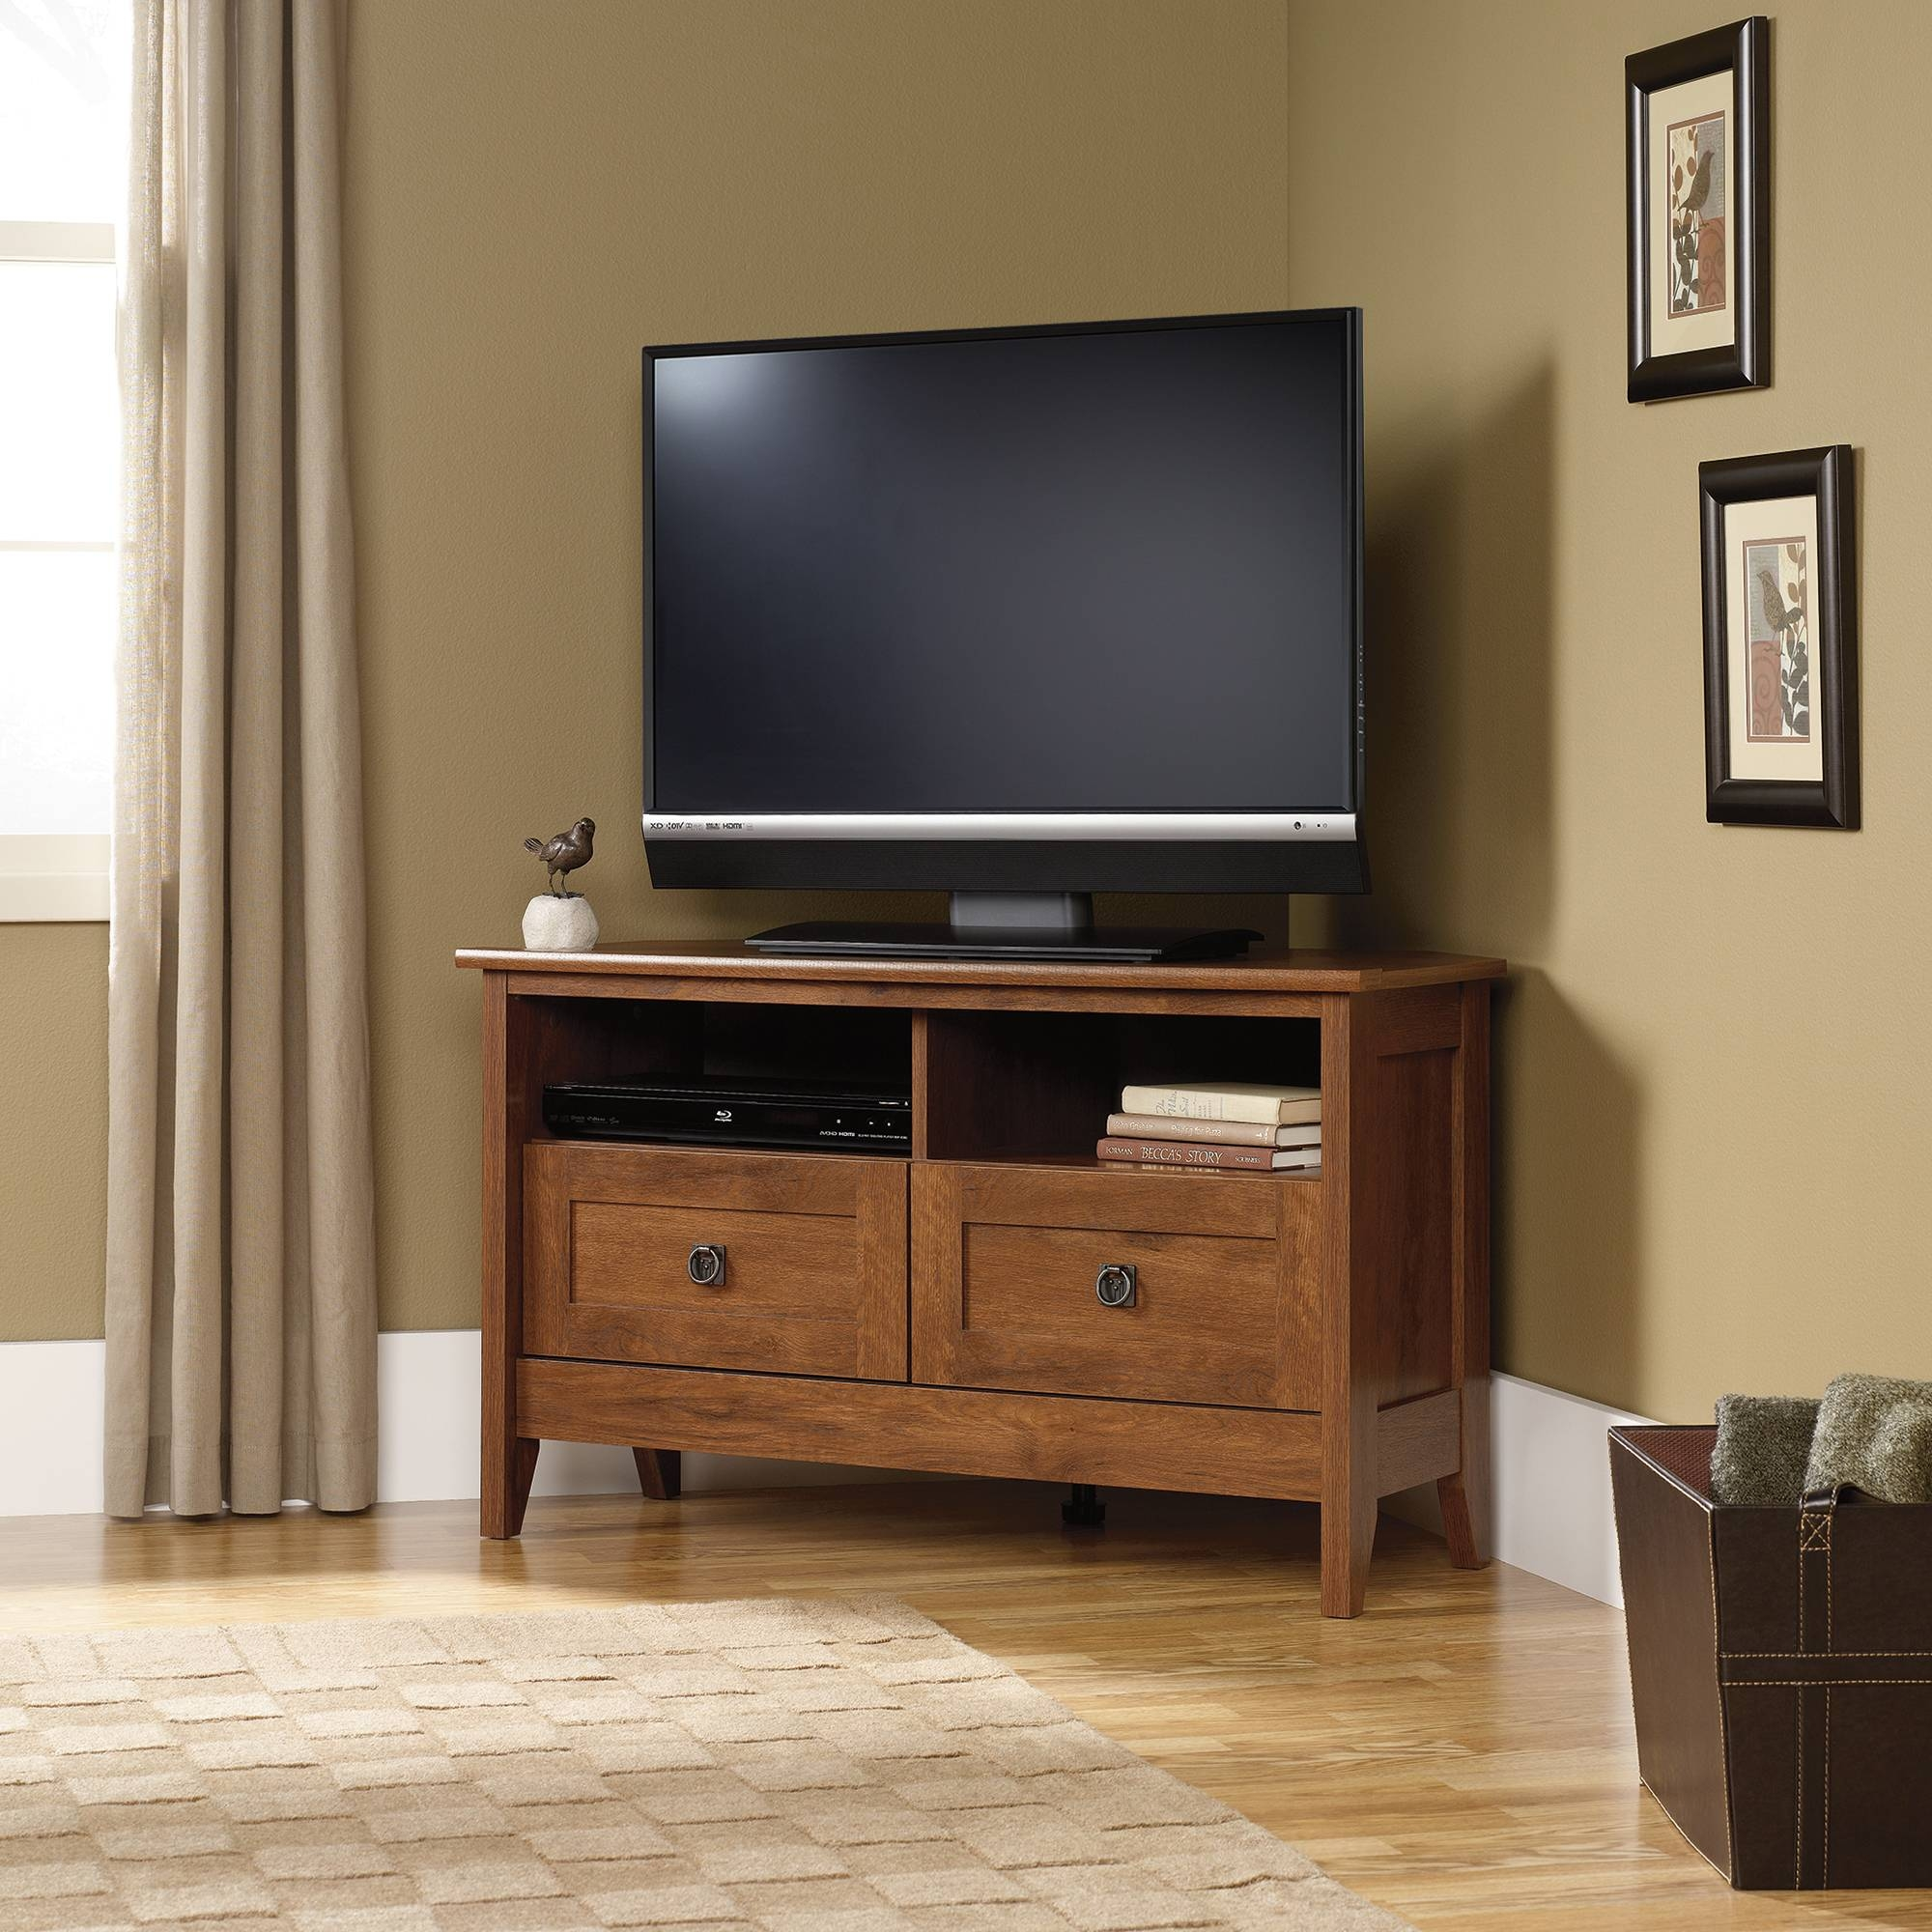 Sauder Select | Corner Tv Stand | 410627 | Sauder In Corner Tv Cabinets For Flat Screen (View 2 of 15)